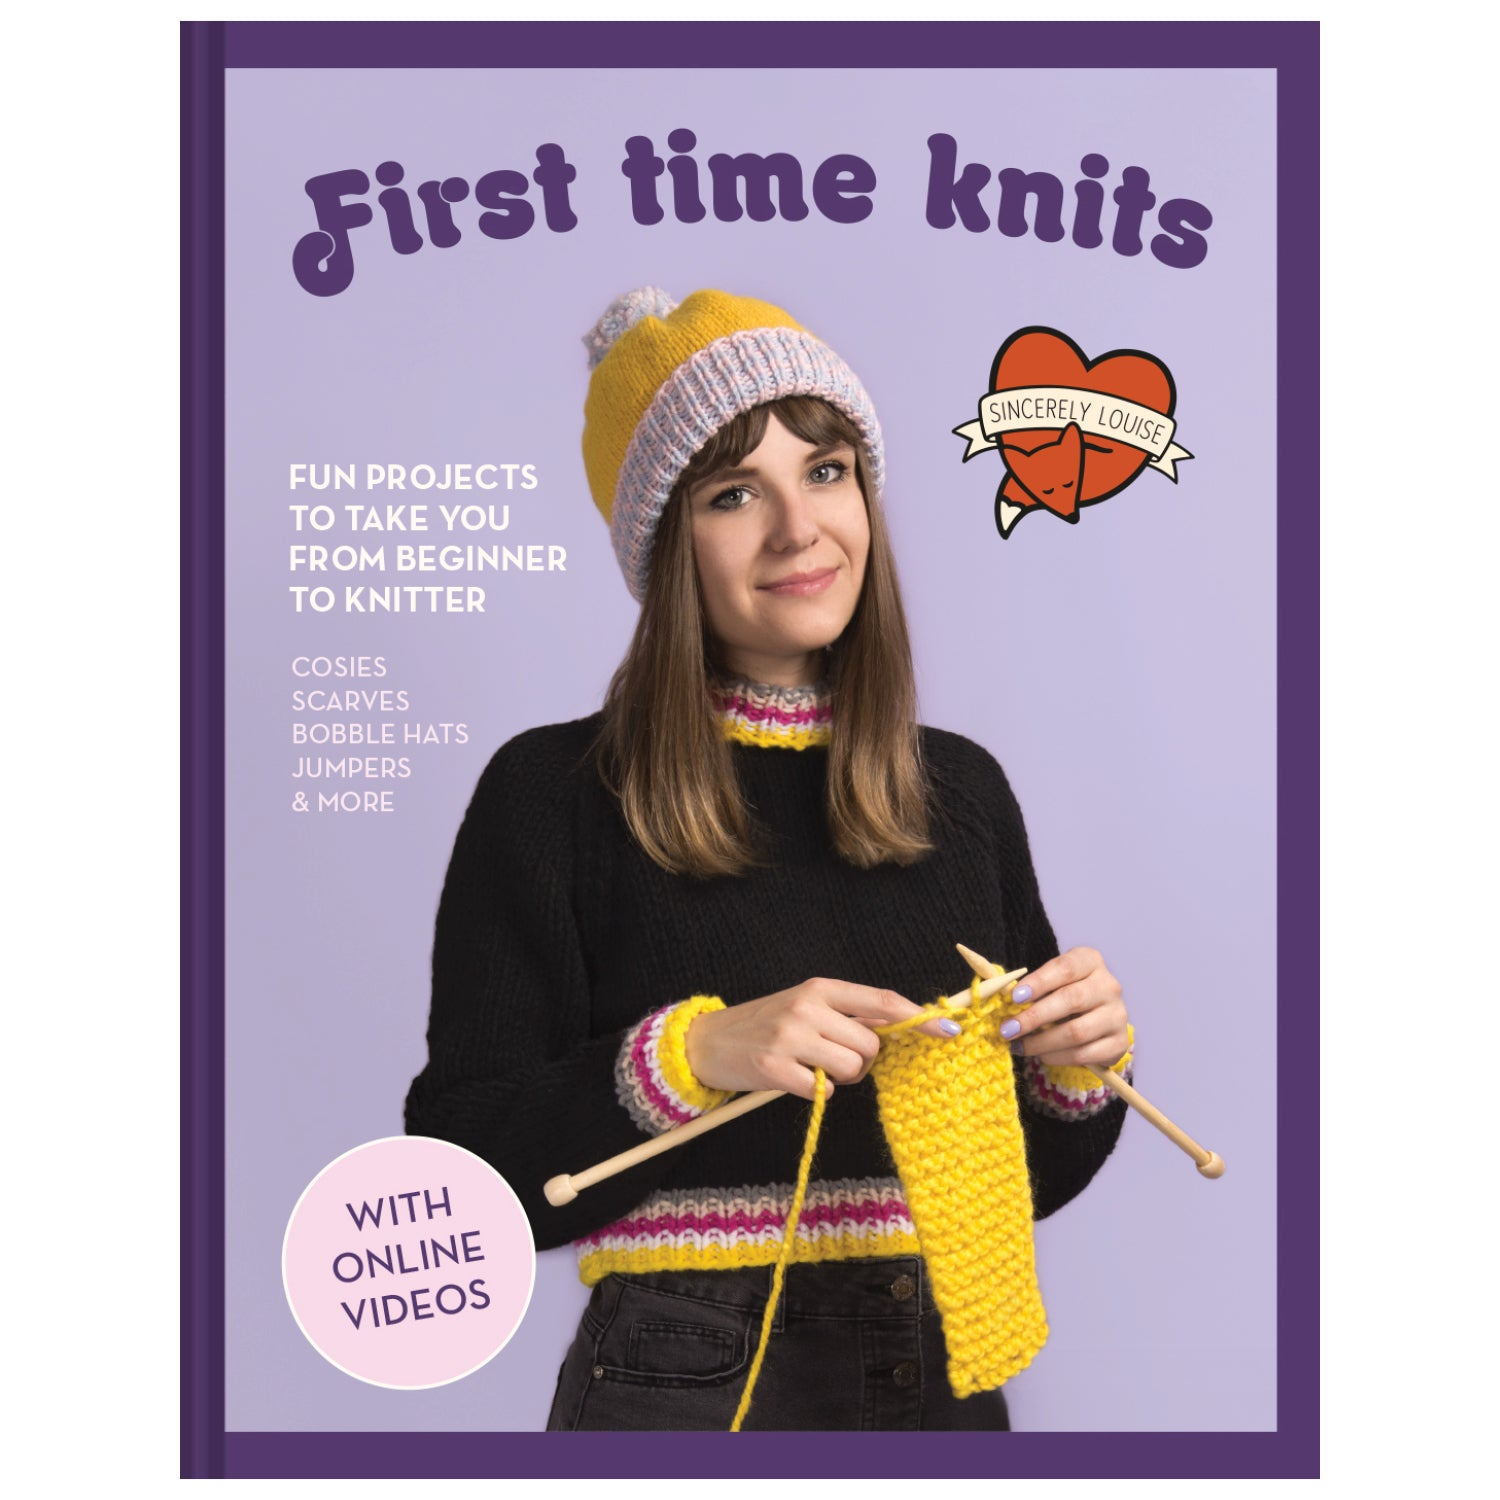 First Time Knits Book - Signed Copy